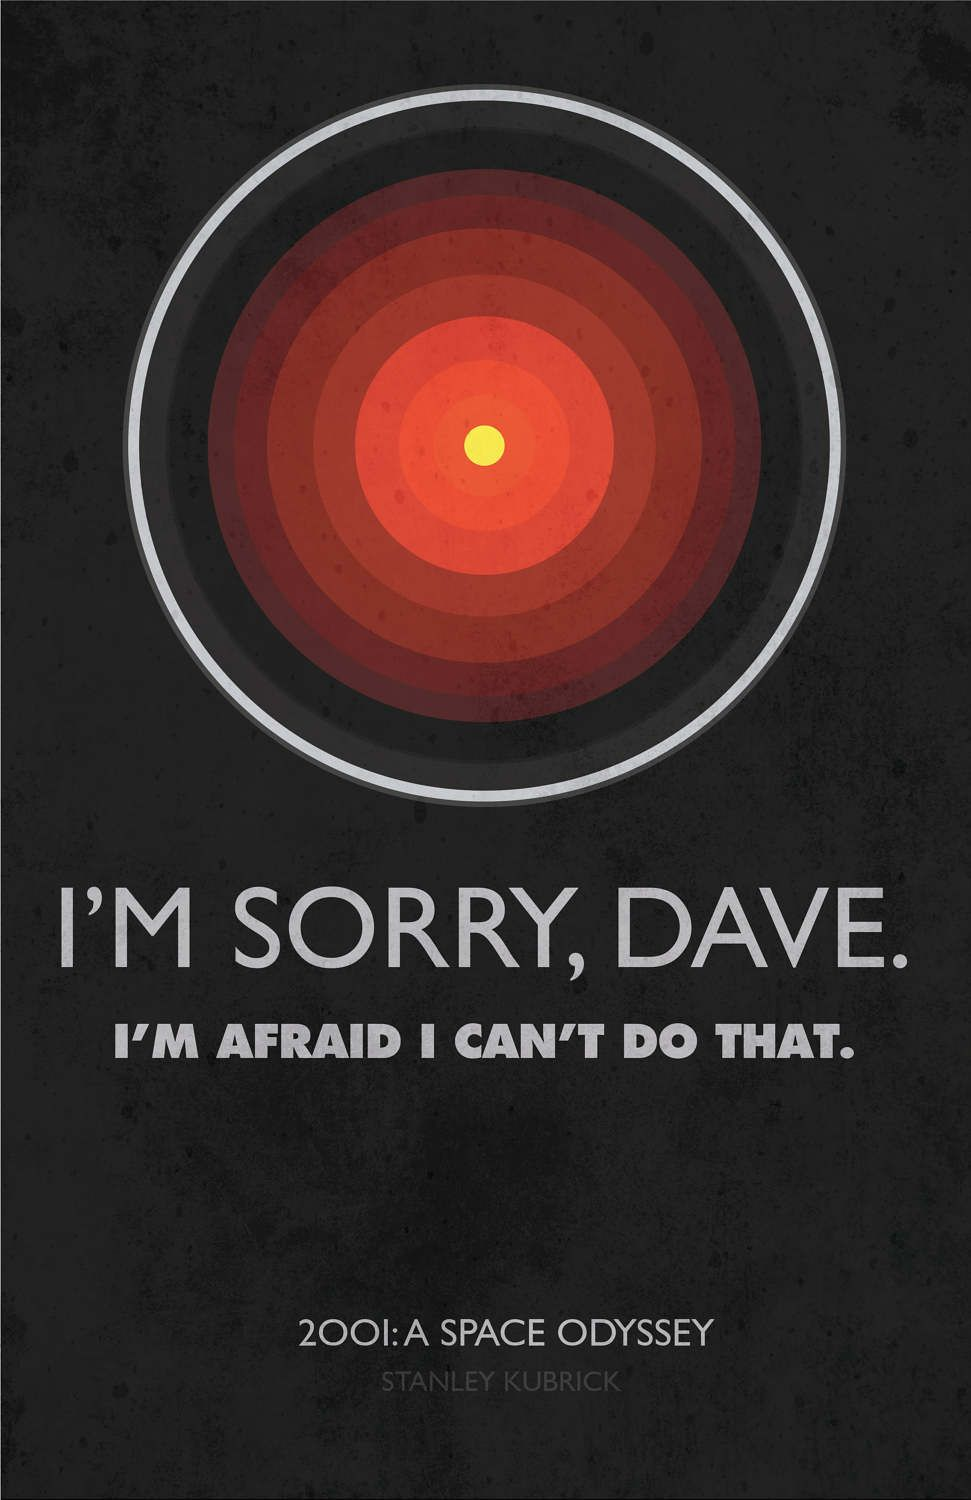 2001 a space odyssey 1968 movie quote poster by ultima prints amusementphile